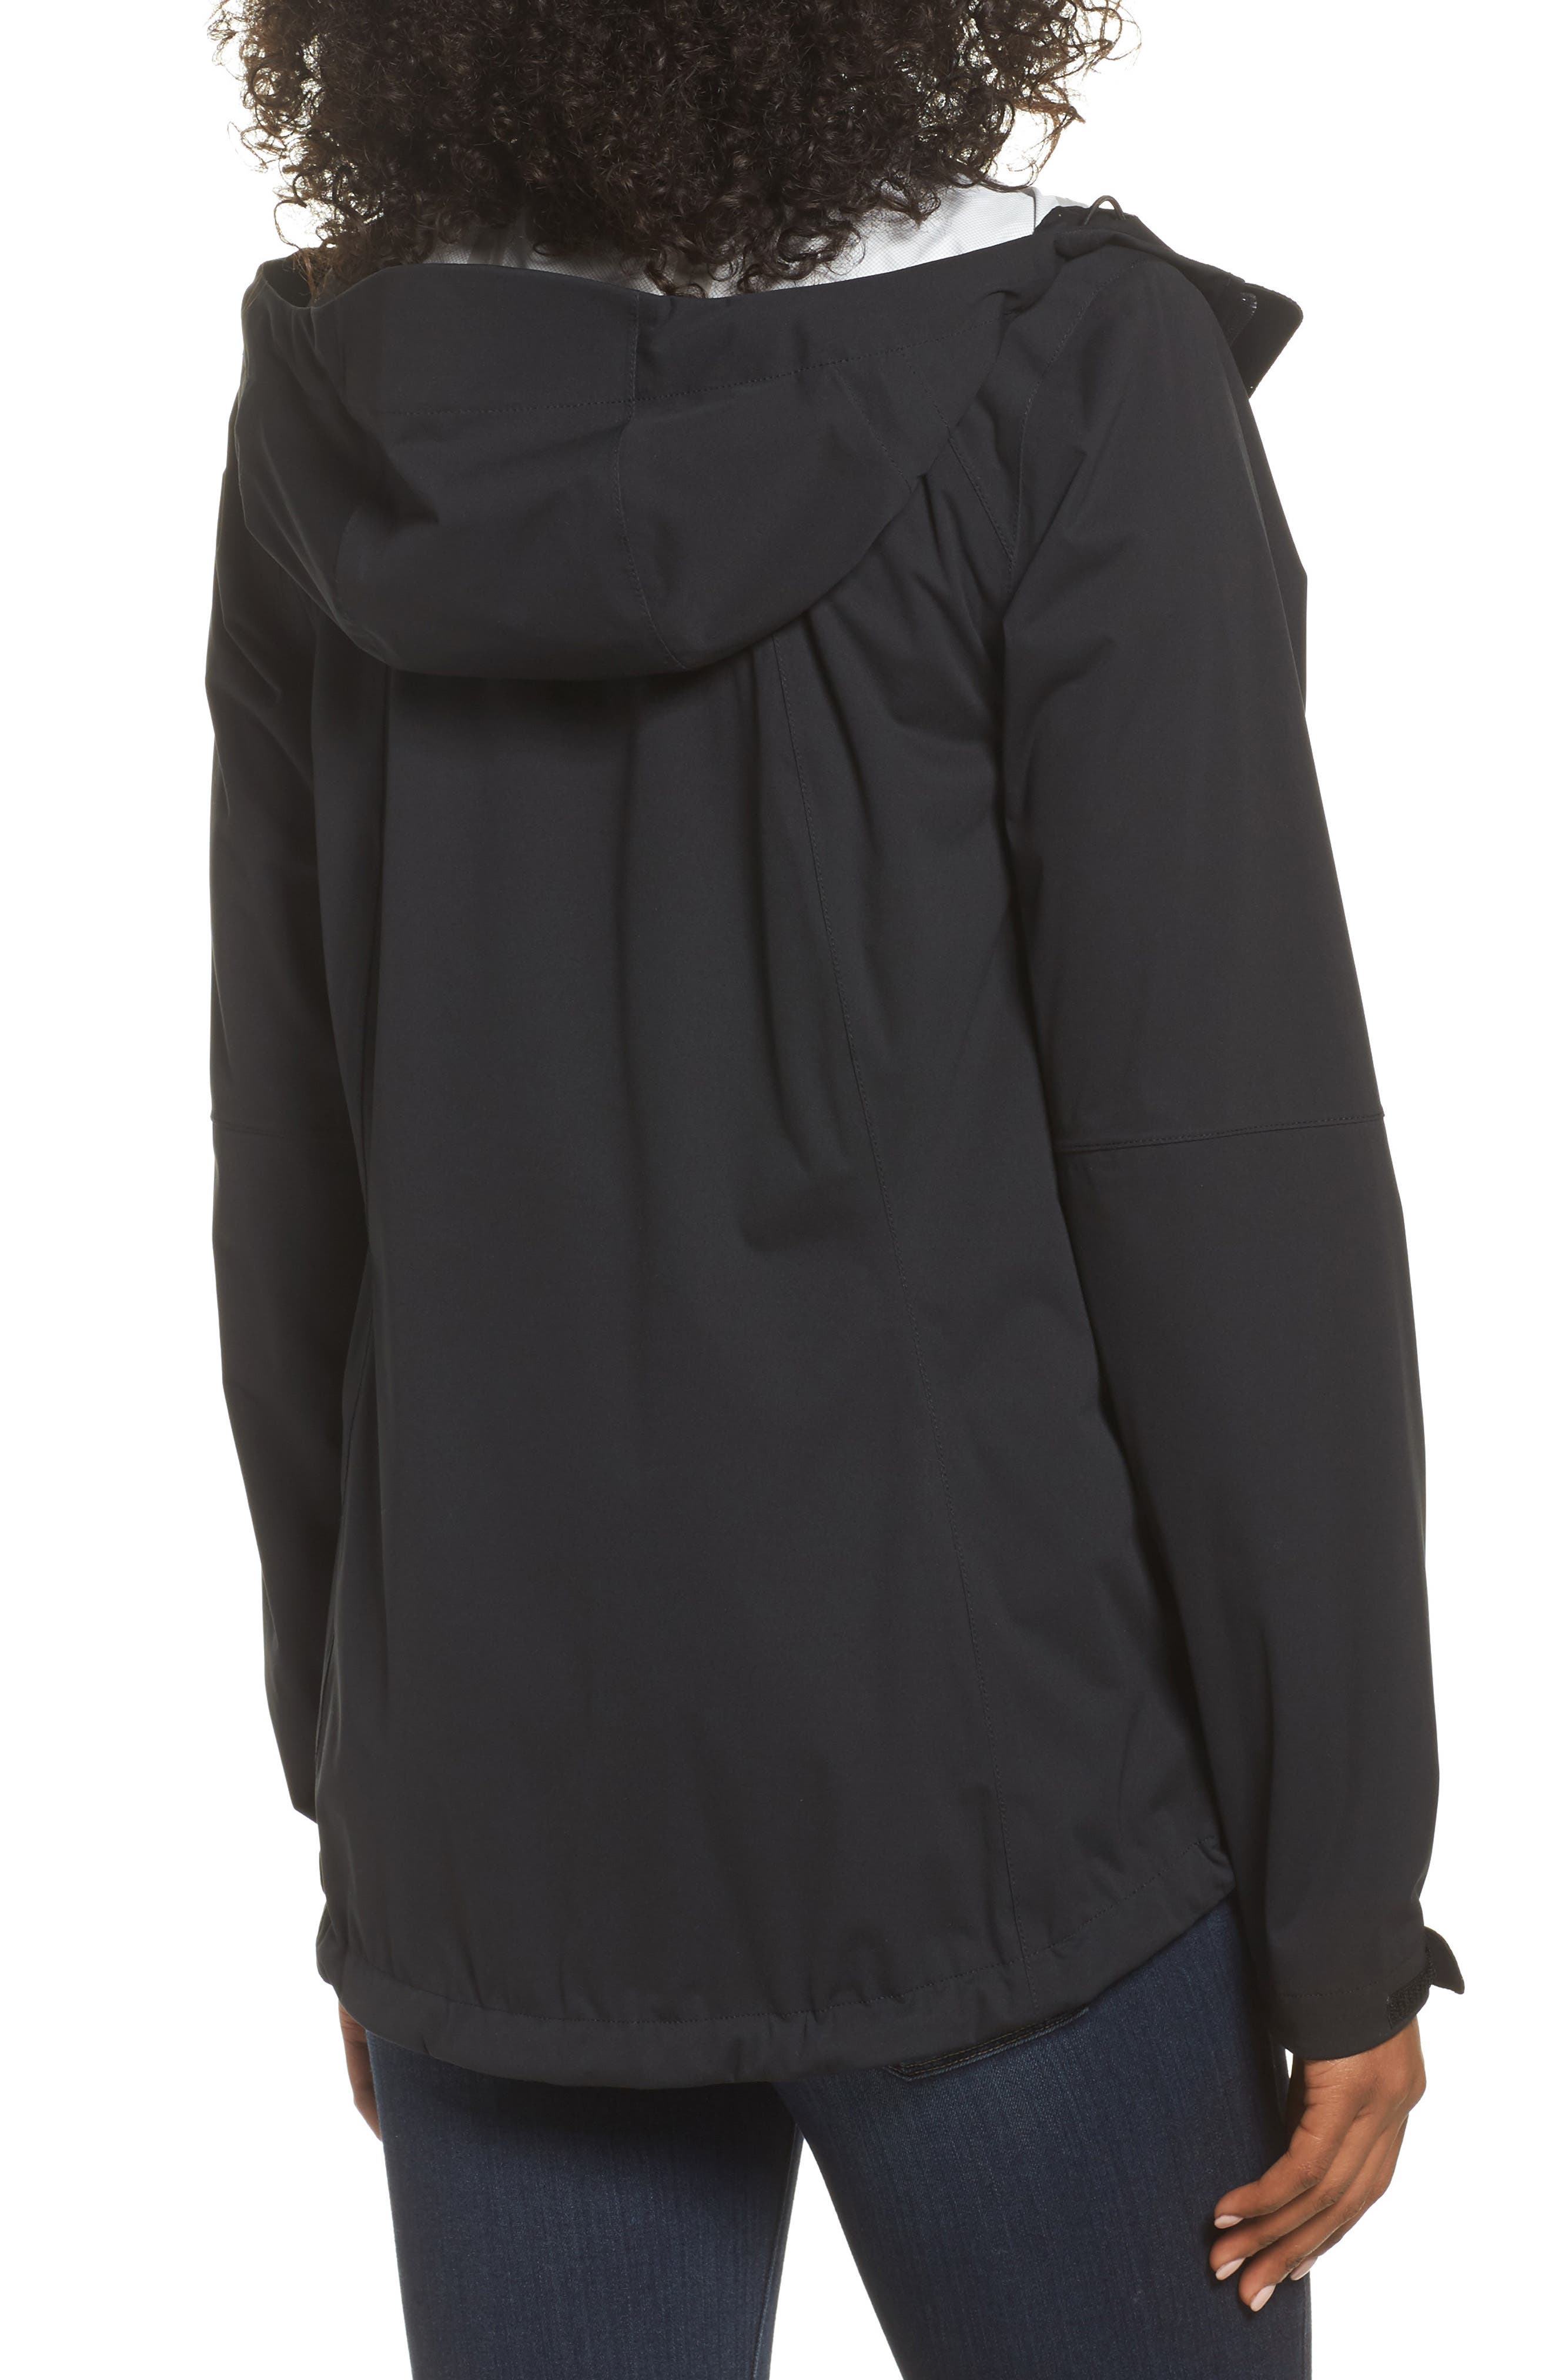 THE NORTH FACE, Allproof Stretch Jacket, Alternate thumbnail 2, color, 001